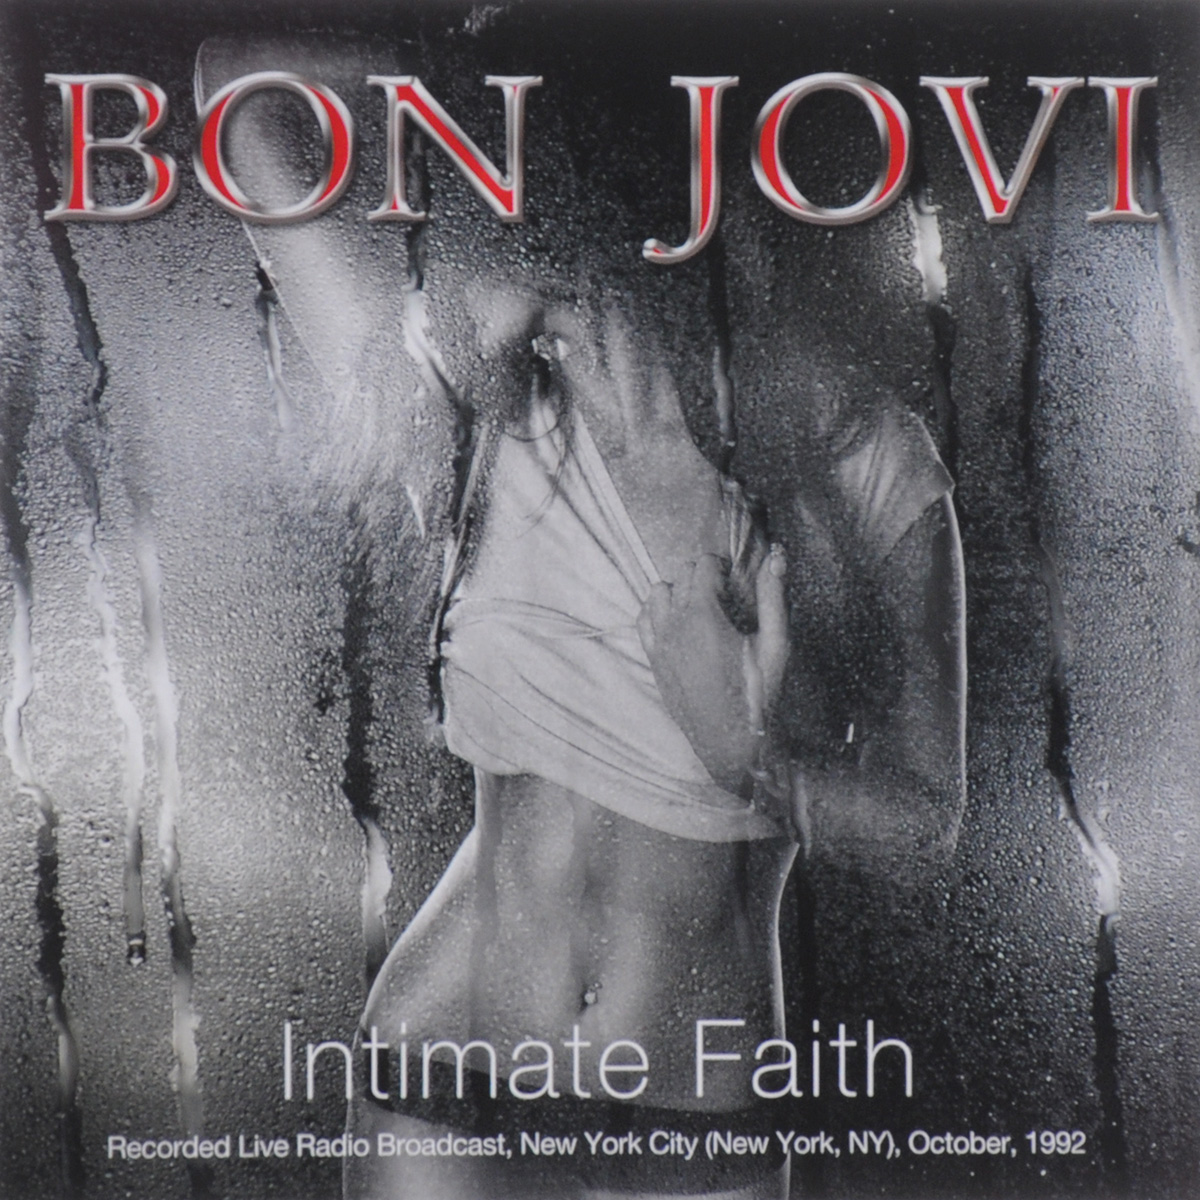 Bon Jovi Bon Jovi. Intimate Faith (2 CD) adderley cannonball adderley cannonball things are getting better